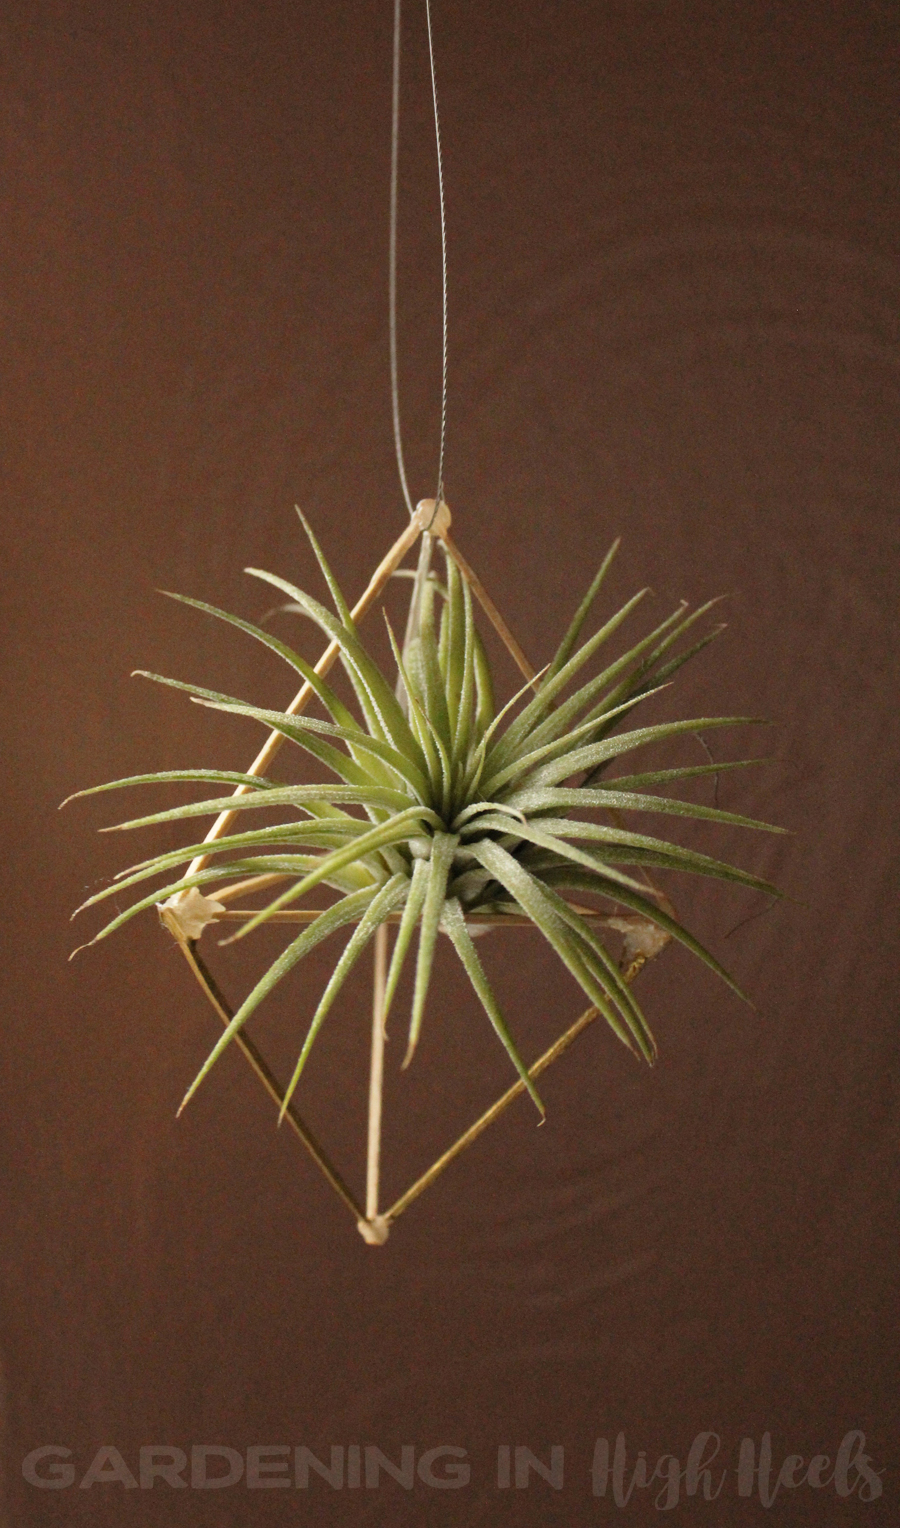 Hanging air plant holder. It was a DIY homemade project using just toothpicks!